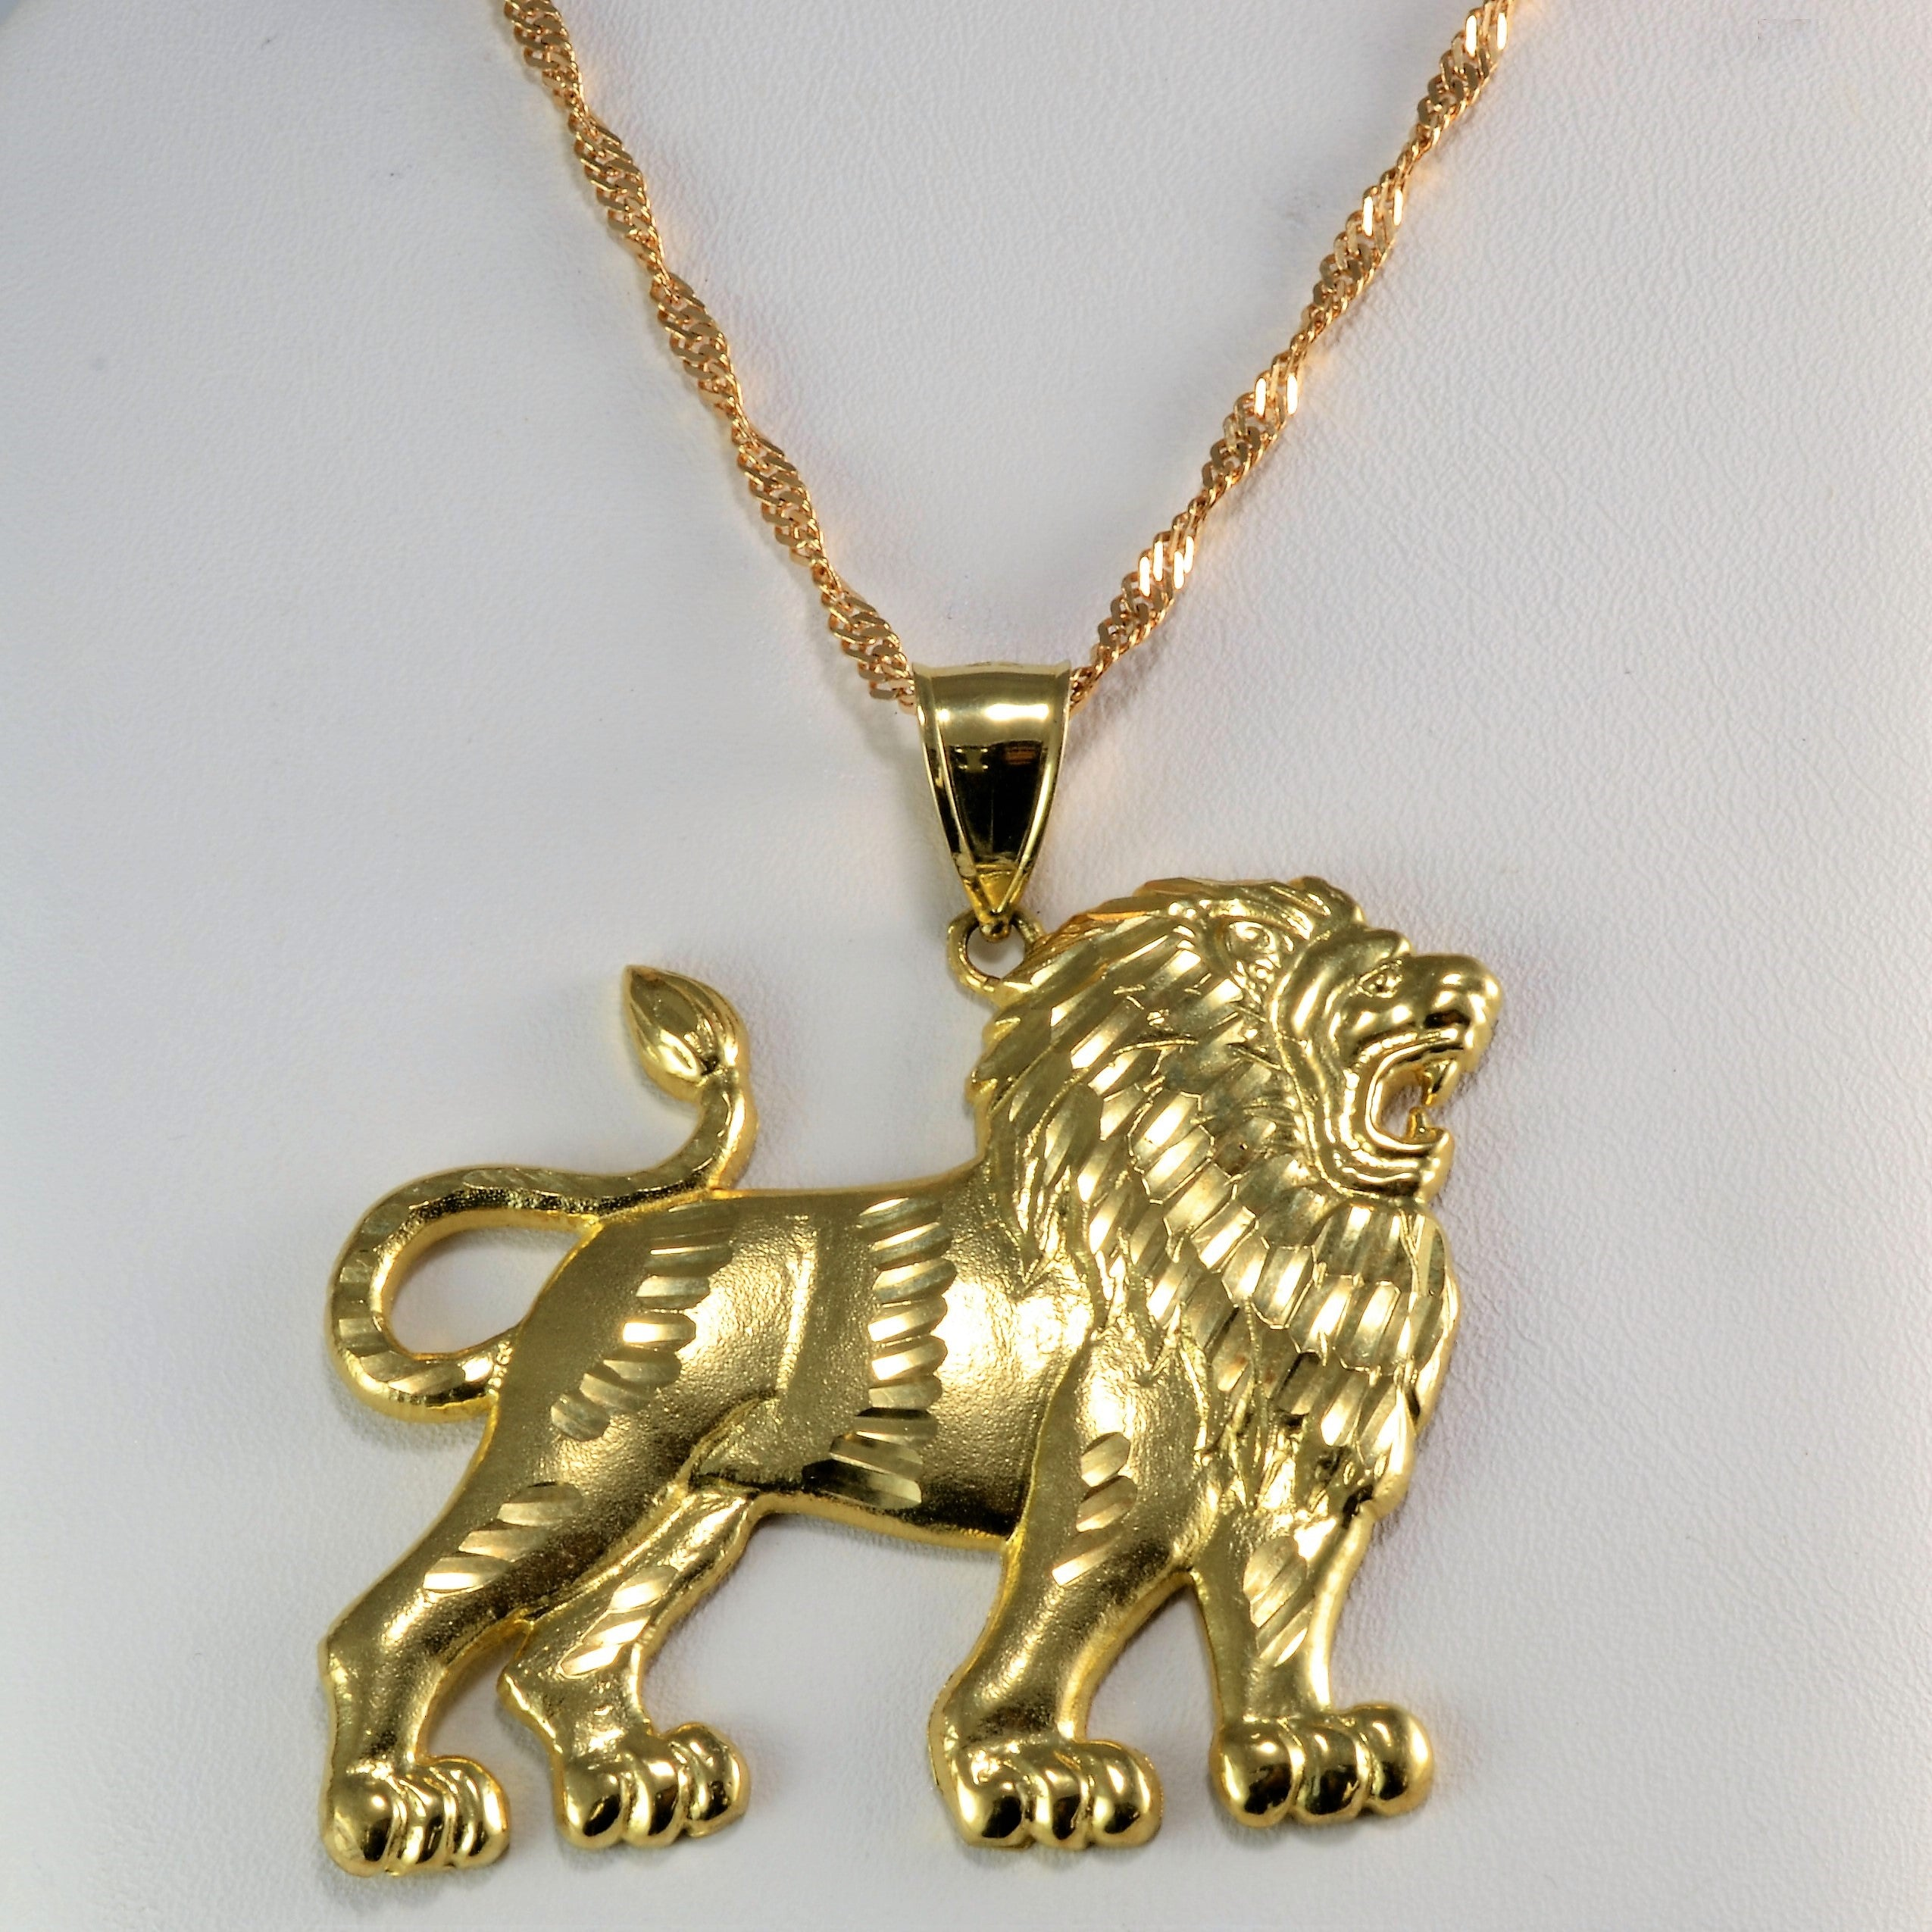 online necklace pendant arpels jewels christie cleef christies lion van s